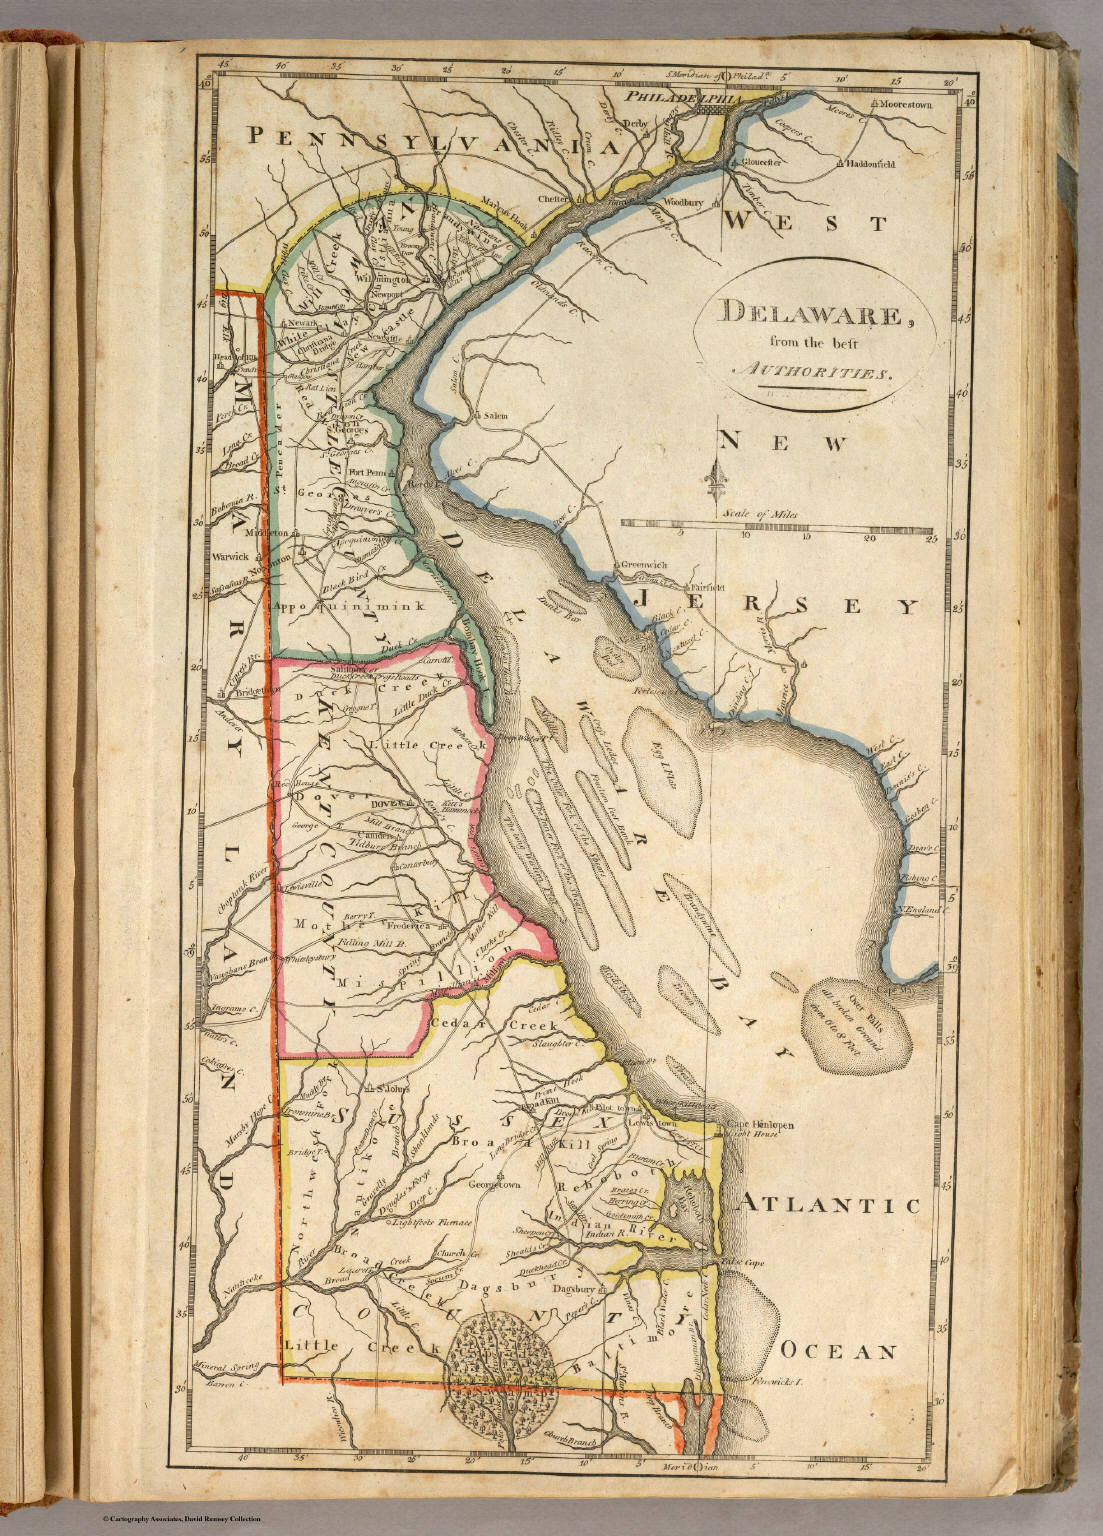 Delaware David Rumsey Historical Map Collection - Map of delaware